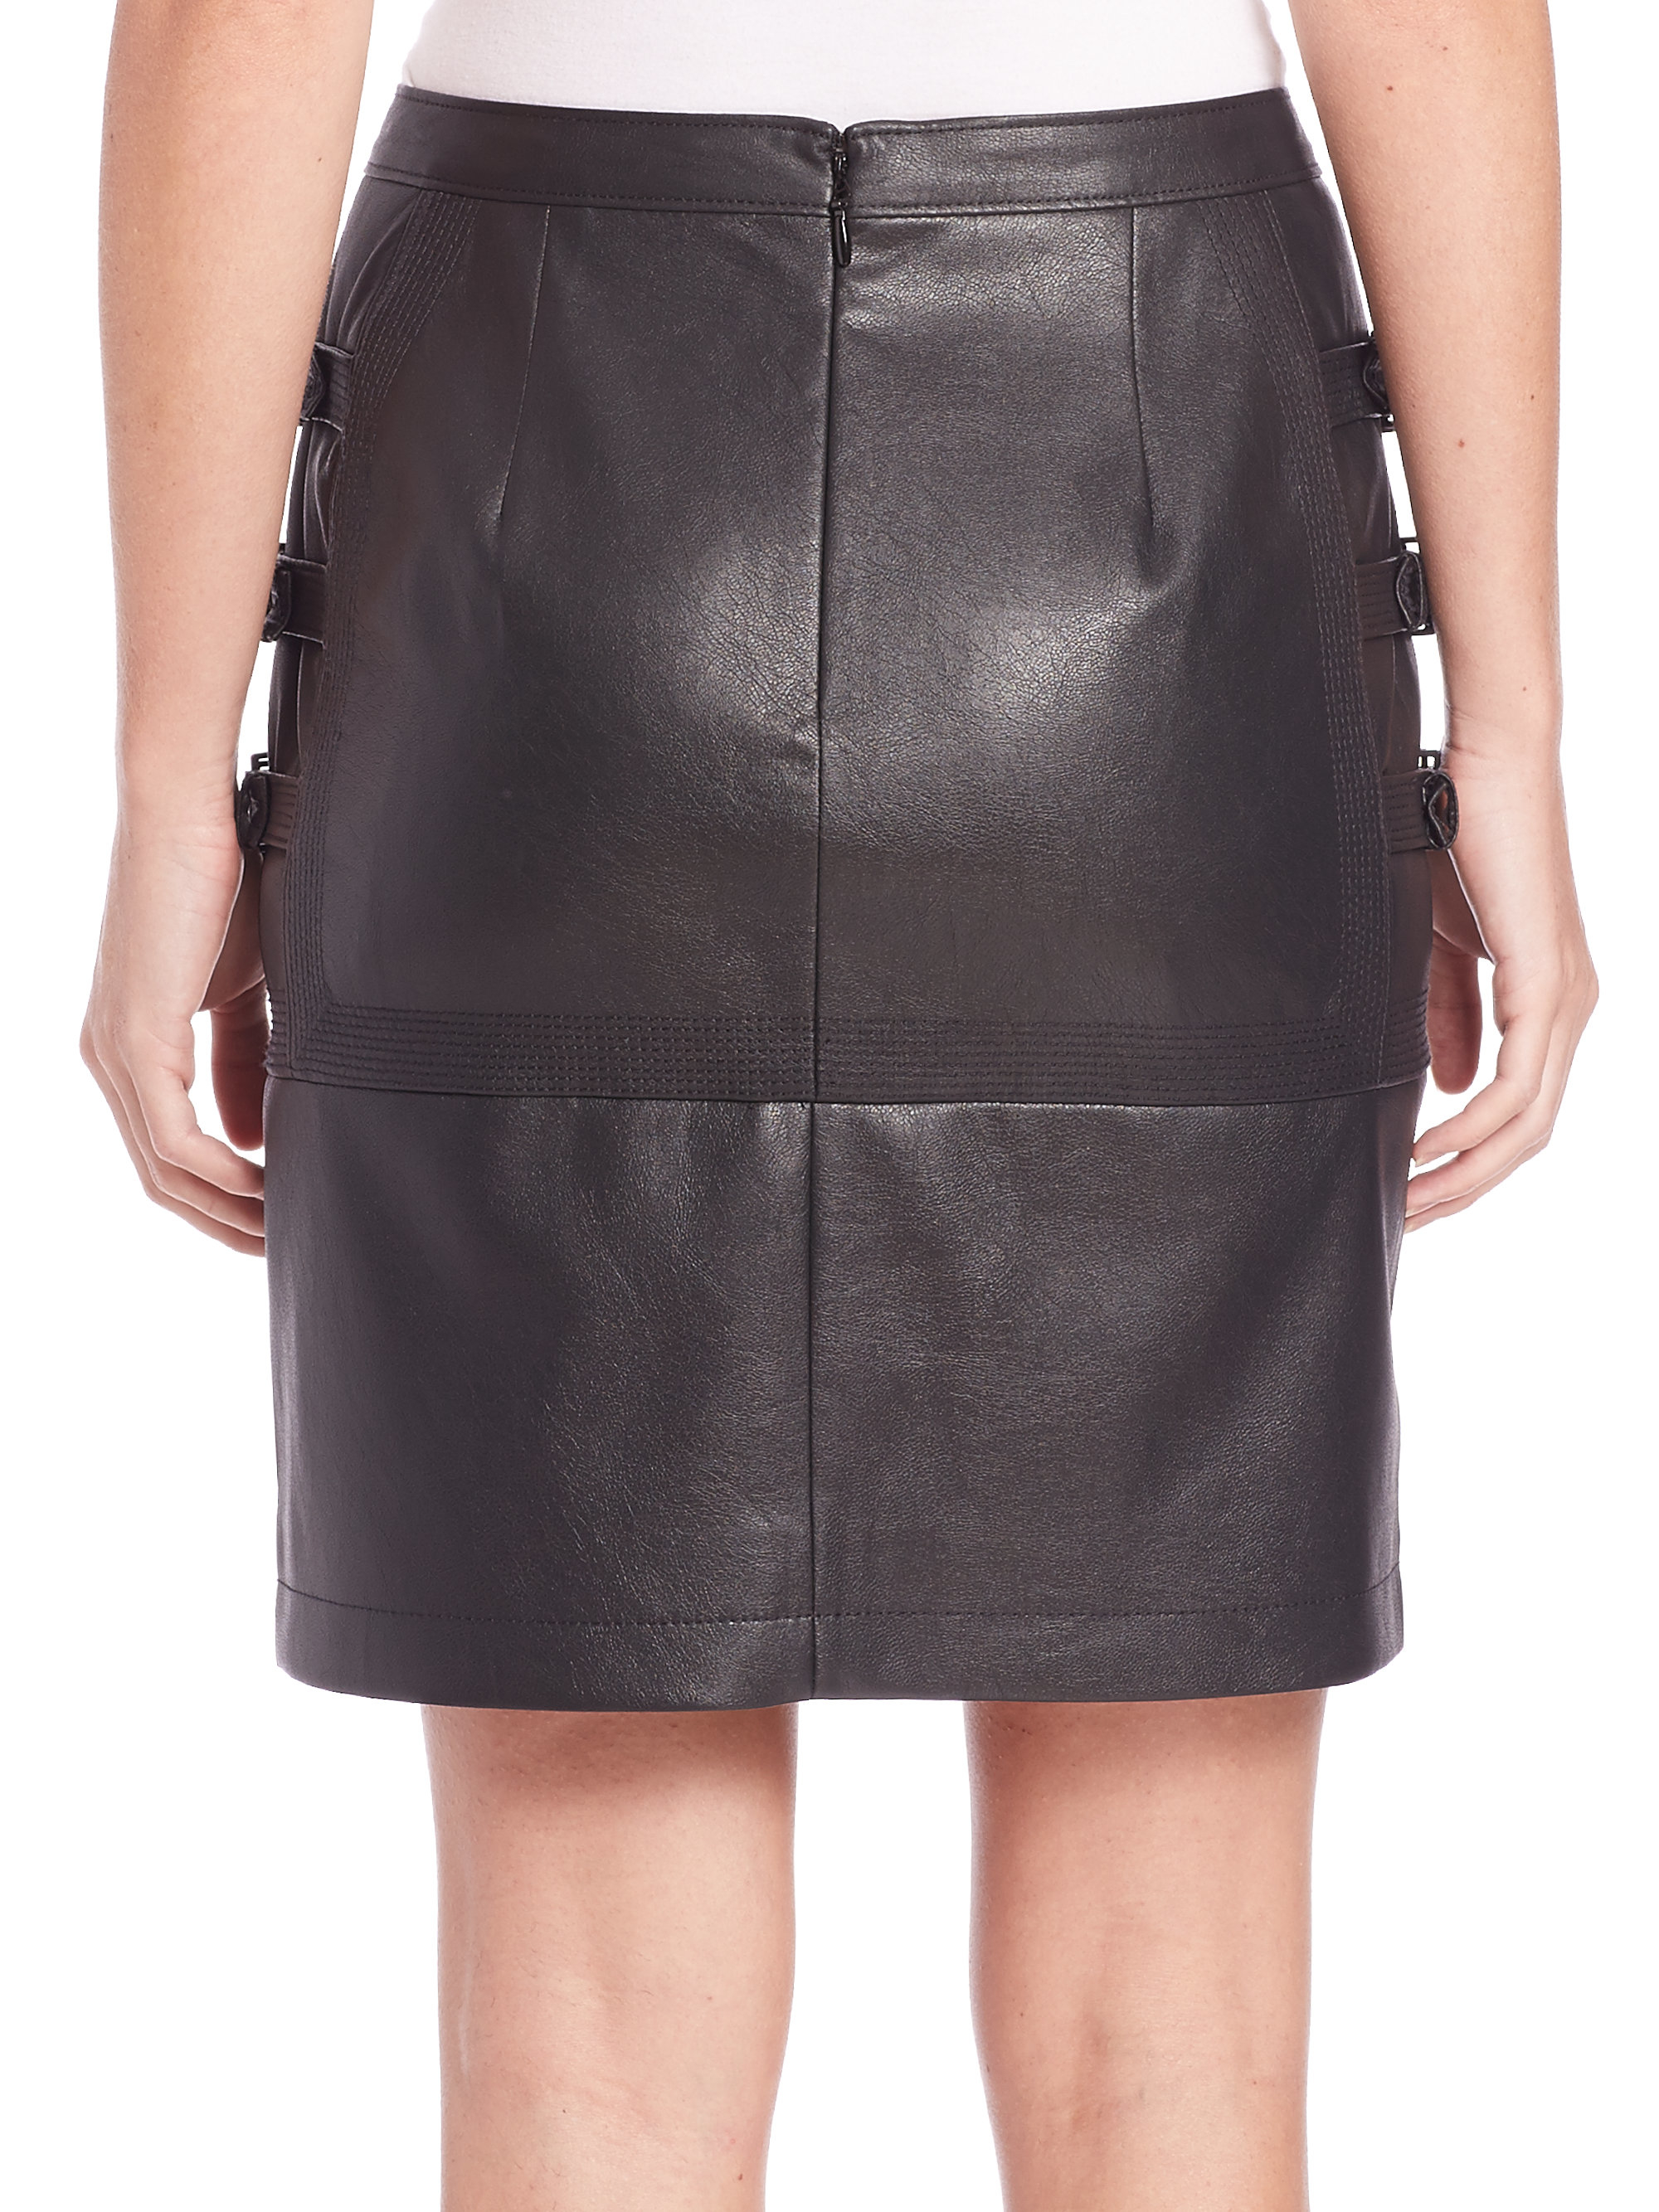 Bcbgmaxazria Faux Leather Buckle Skirt in Black | Lyst